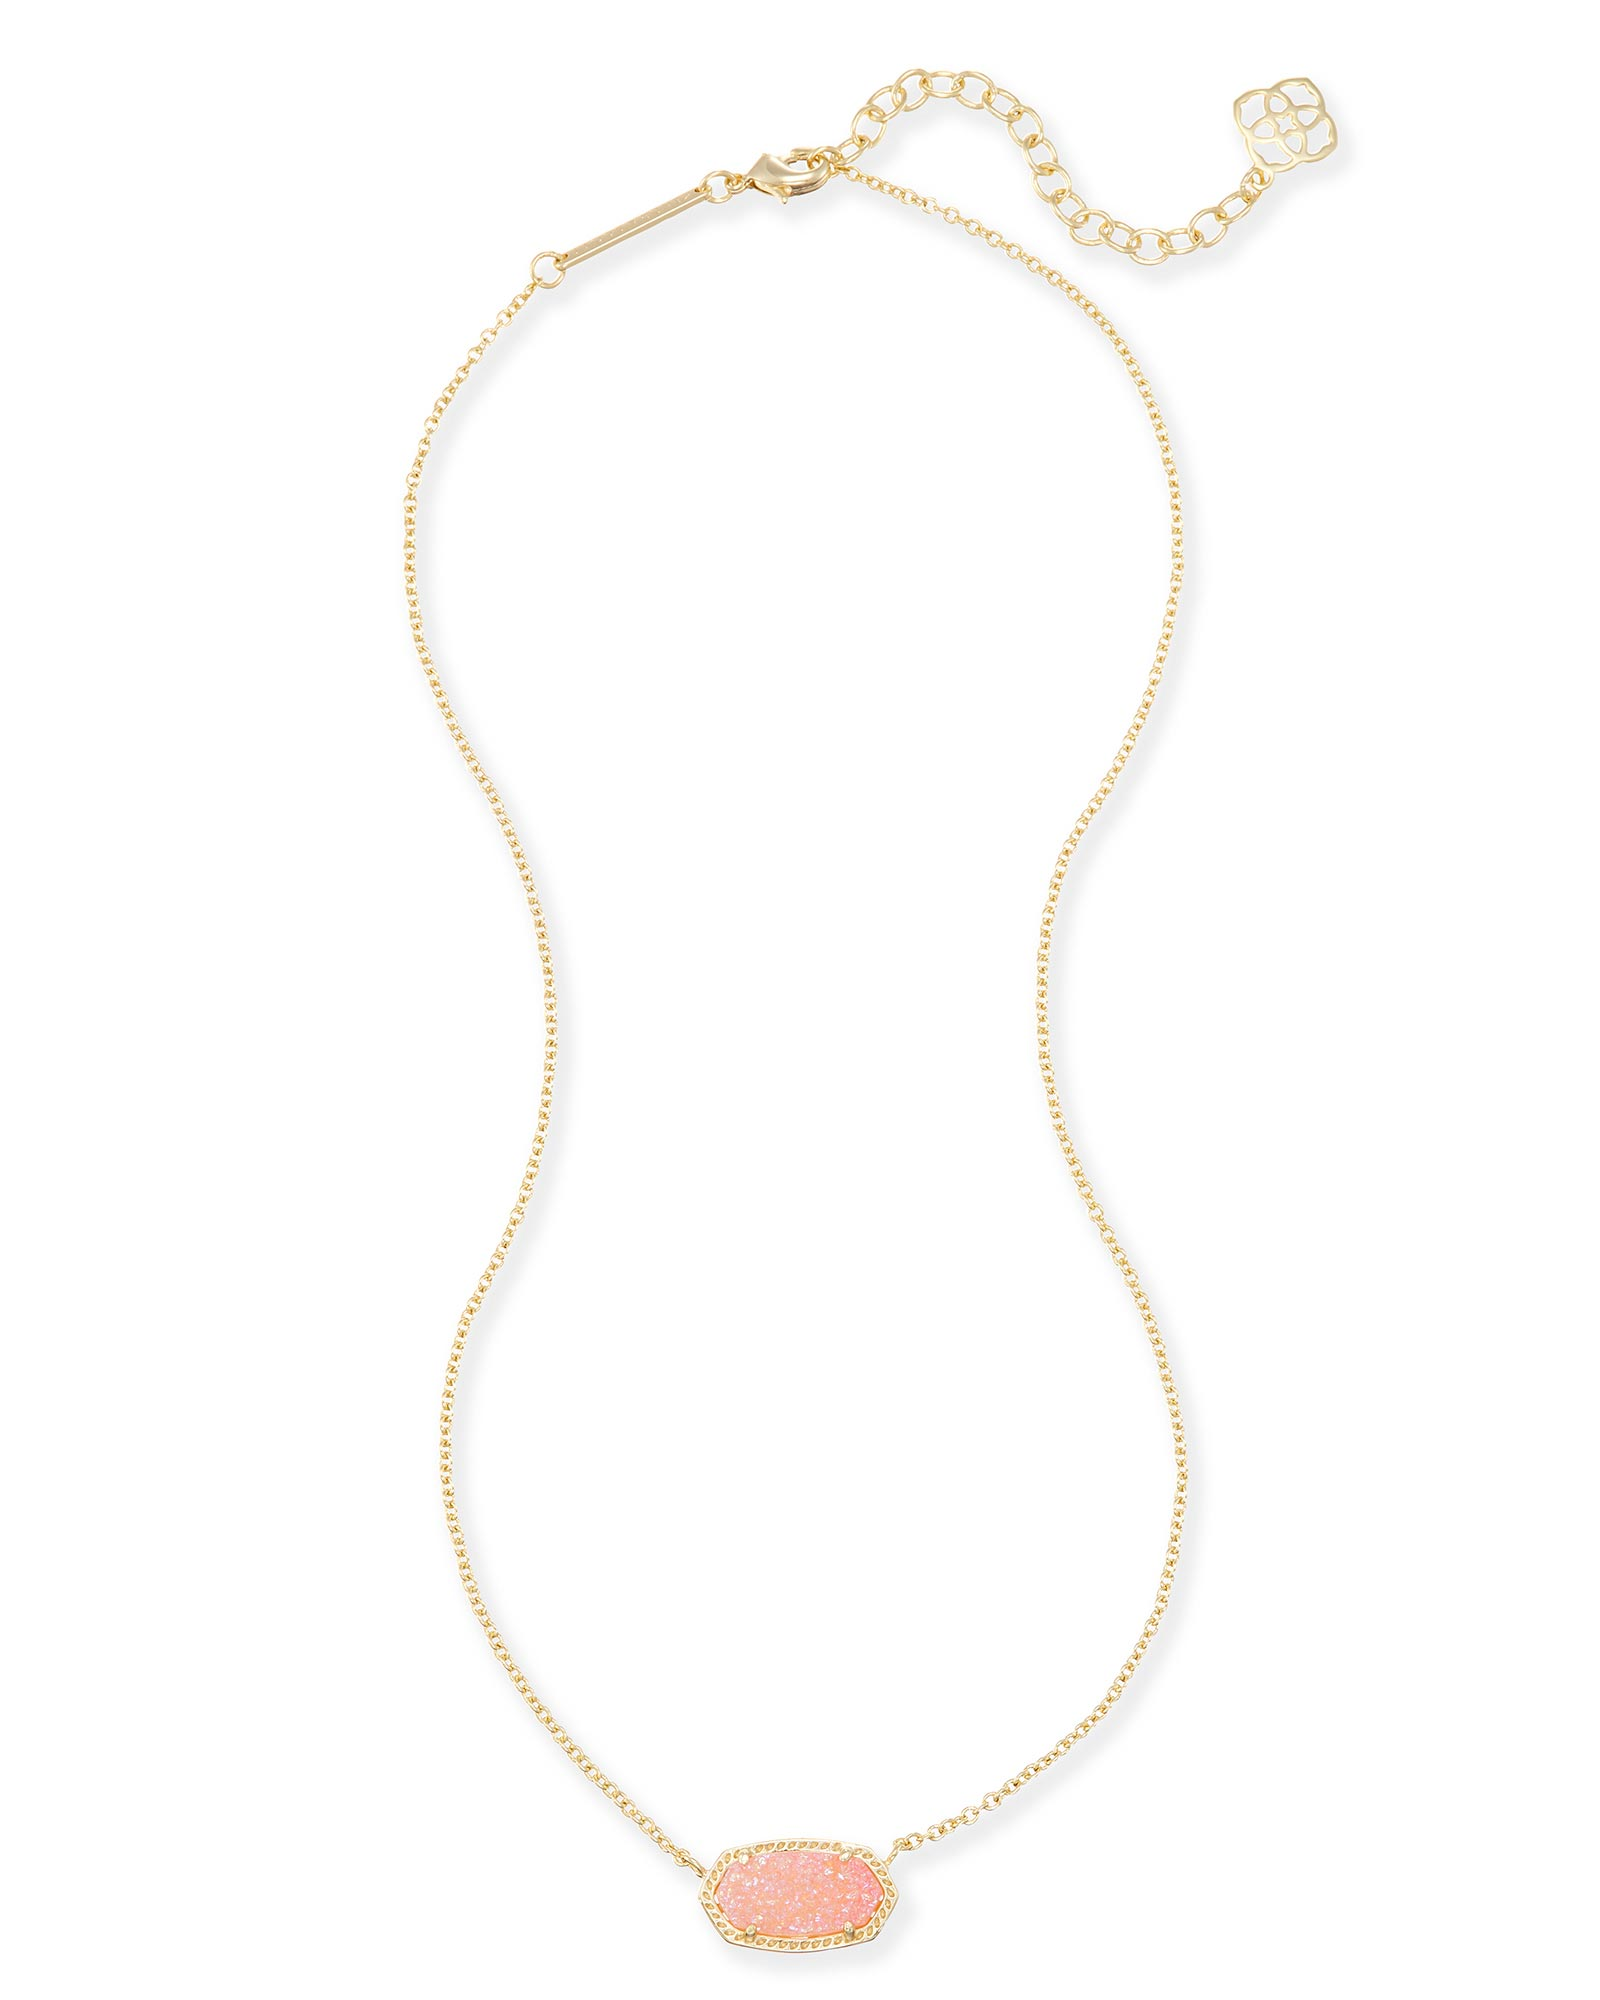 Elisa Gold Pendant Necklace in Pink Drusy Kendra Scott